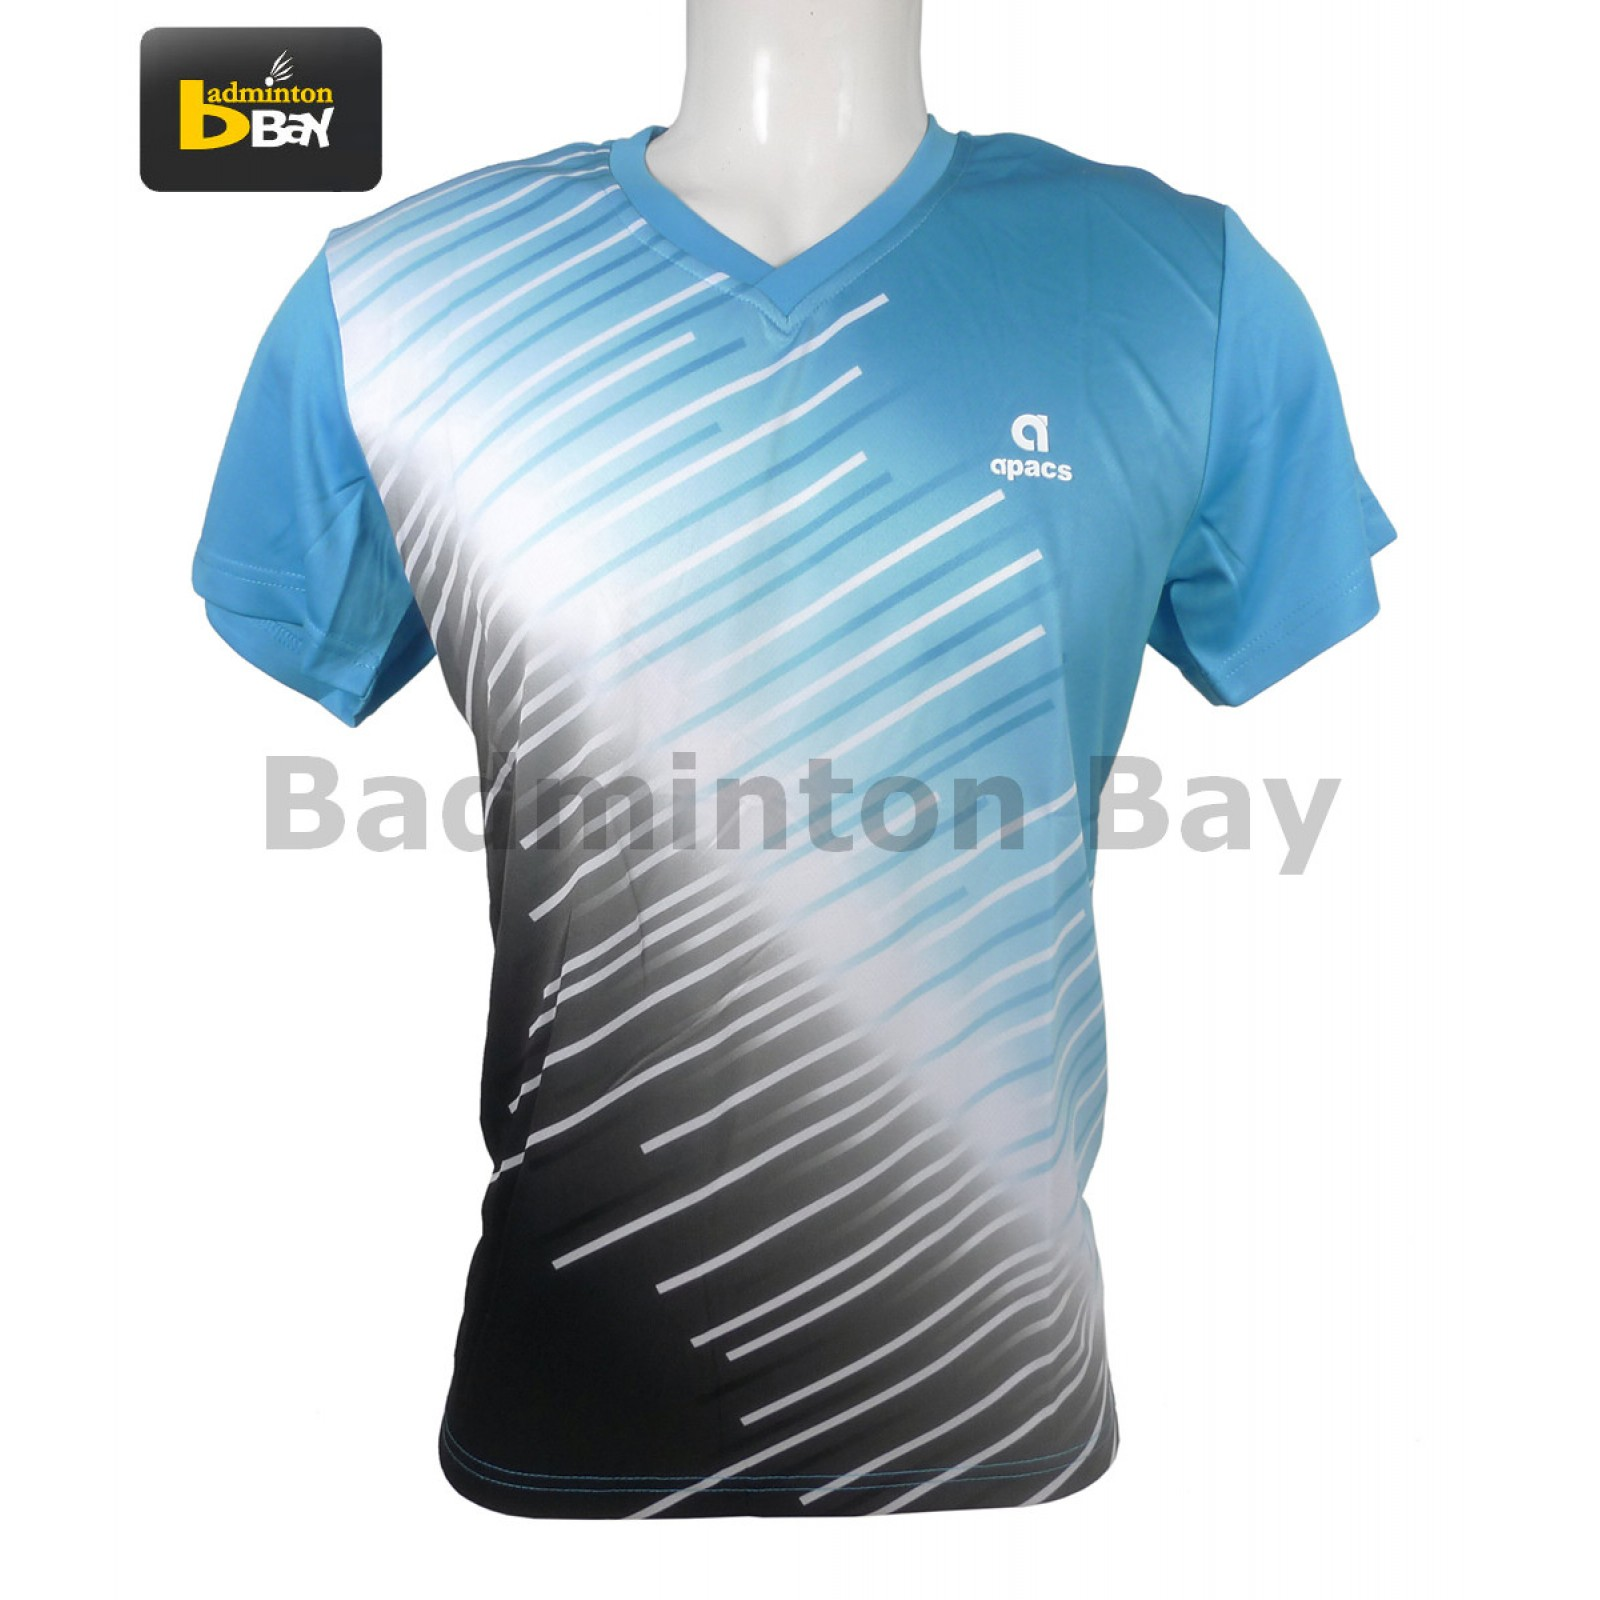 Design t shirt badminton - Apacs Dri Fast Ap 3212 Blue Junior T Shirt Jersey Smaller Sizes From 3xs Xs